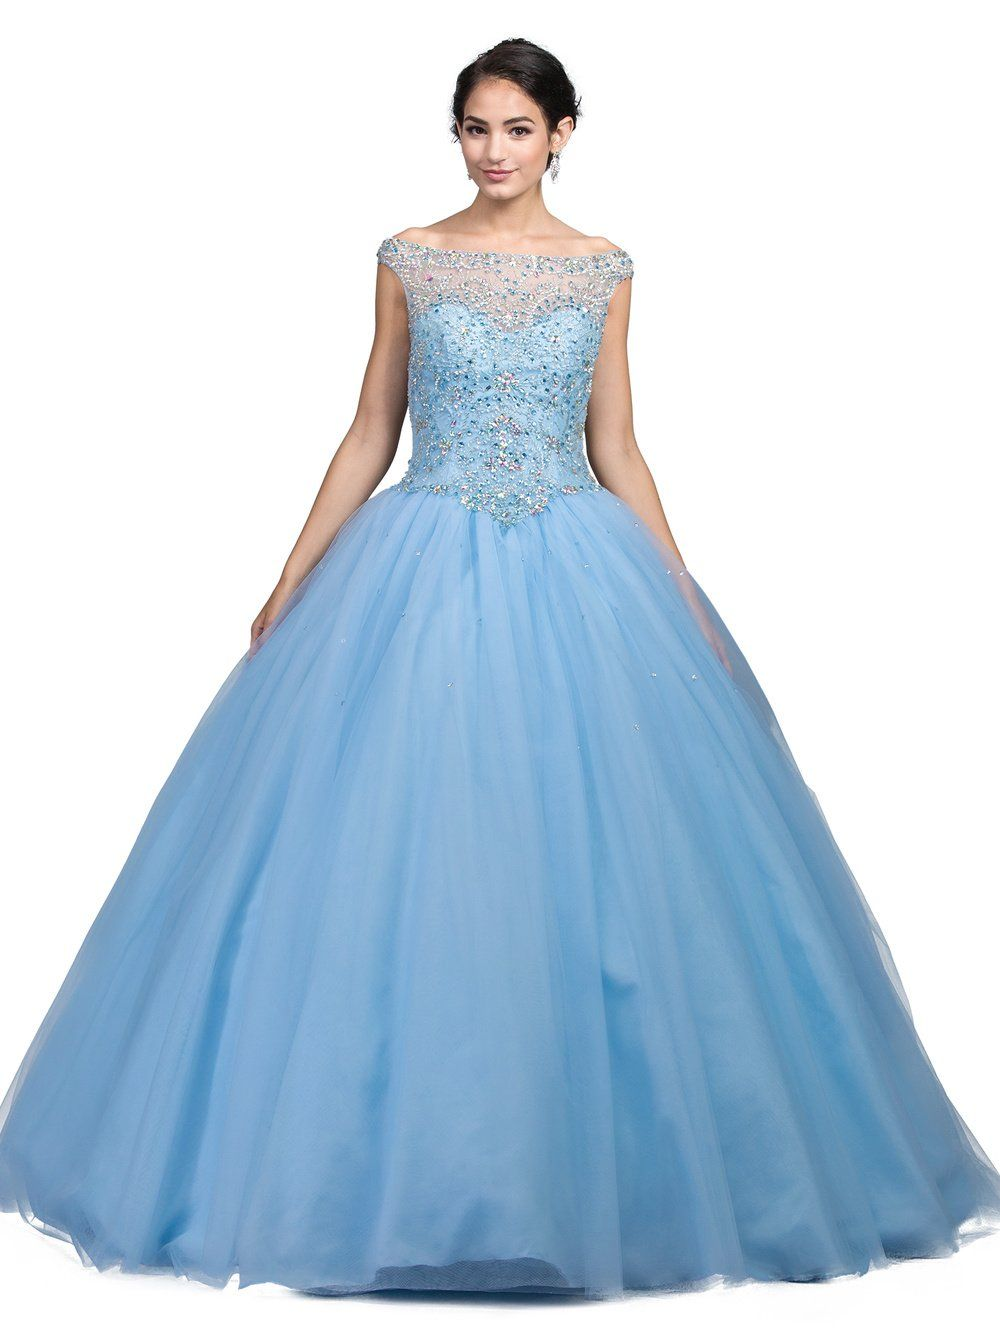 Off the shoulder blue quince dress Dq 1246-Simply Fab Dress